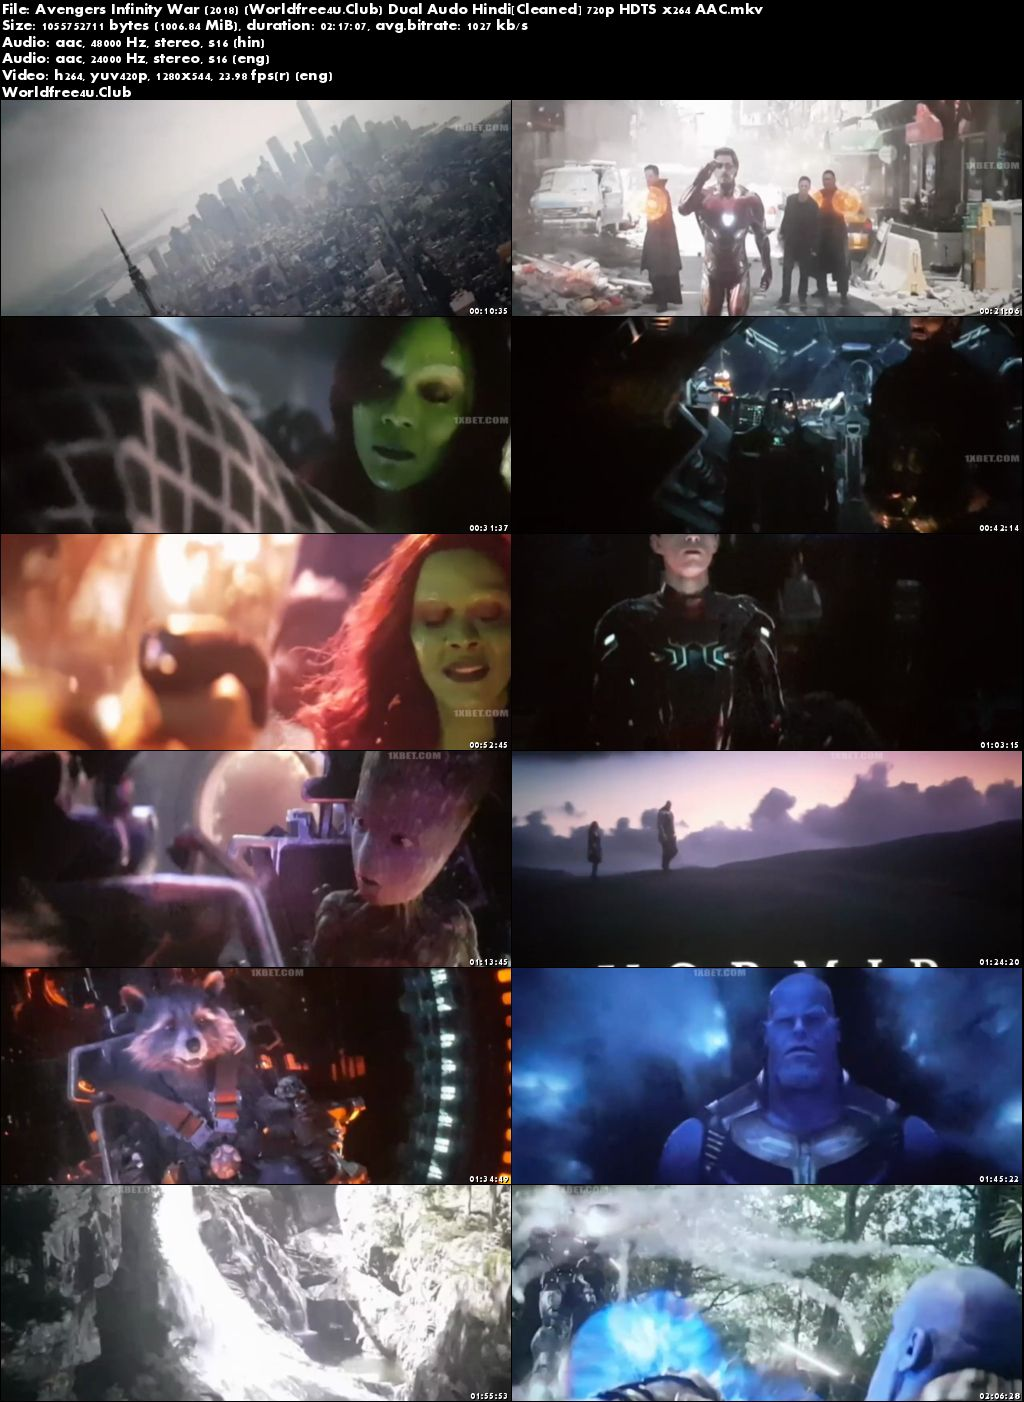 hd.download,avengers: infinity war (2018) 720p full movie online